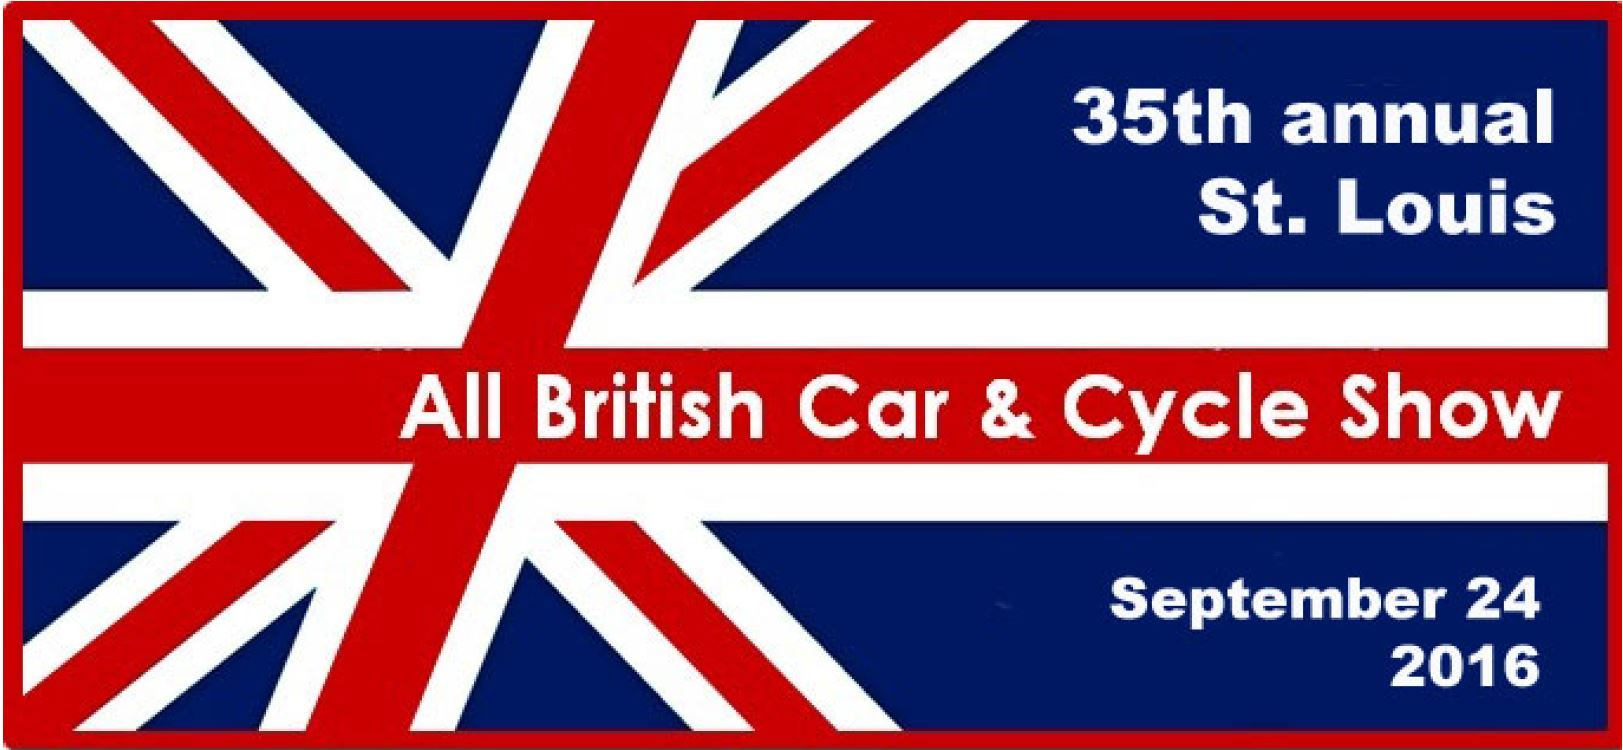 St Louis All British Car and Cycle Show